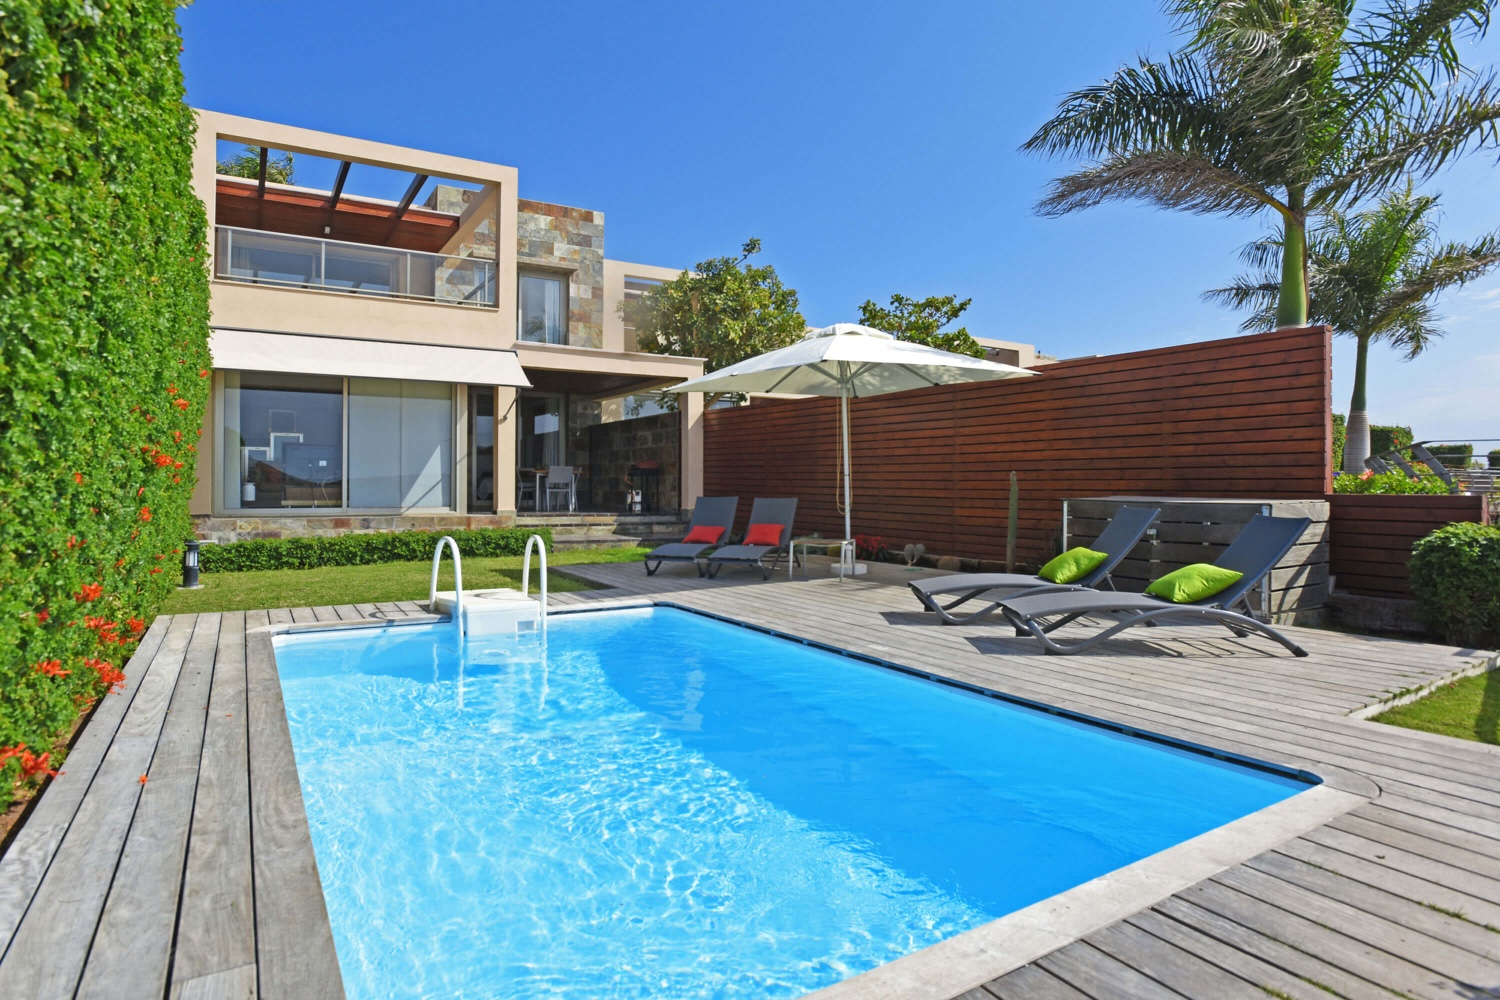 Modern 3 bedroom villa with private pool in a well maintained complex with beautiful views of the golf course and the sea